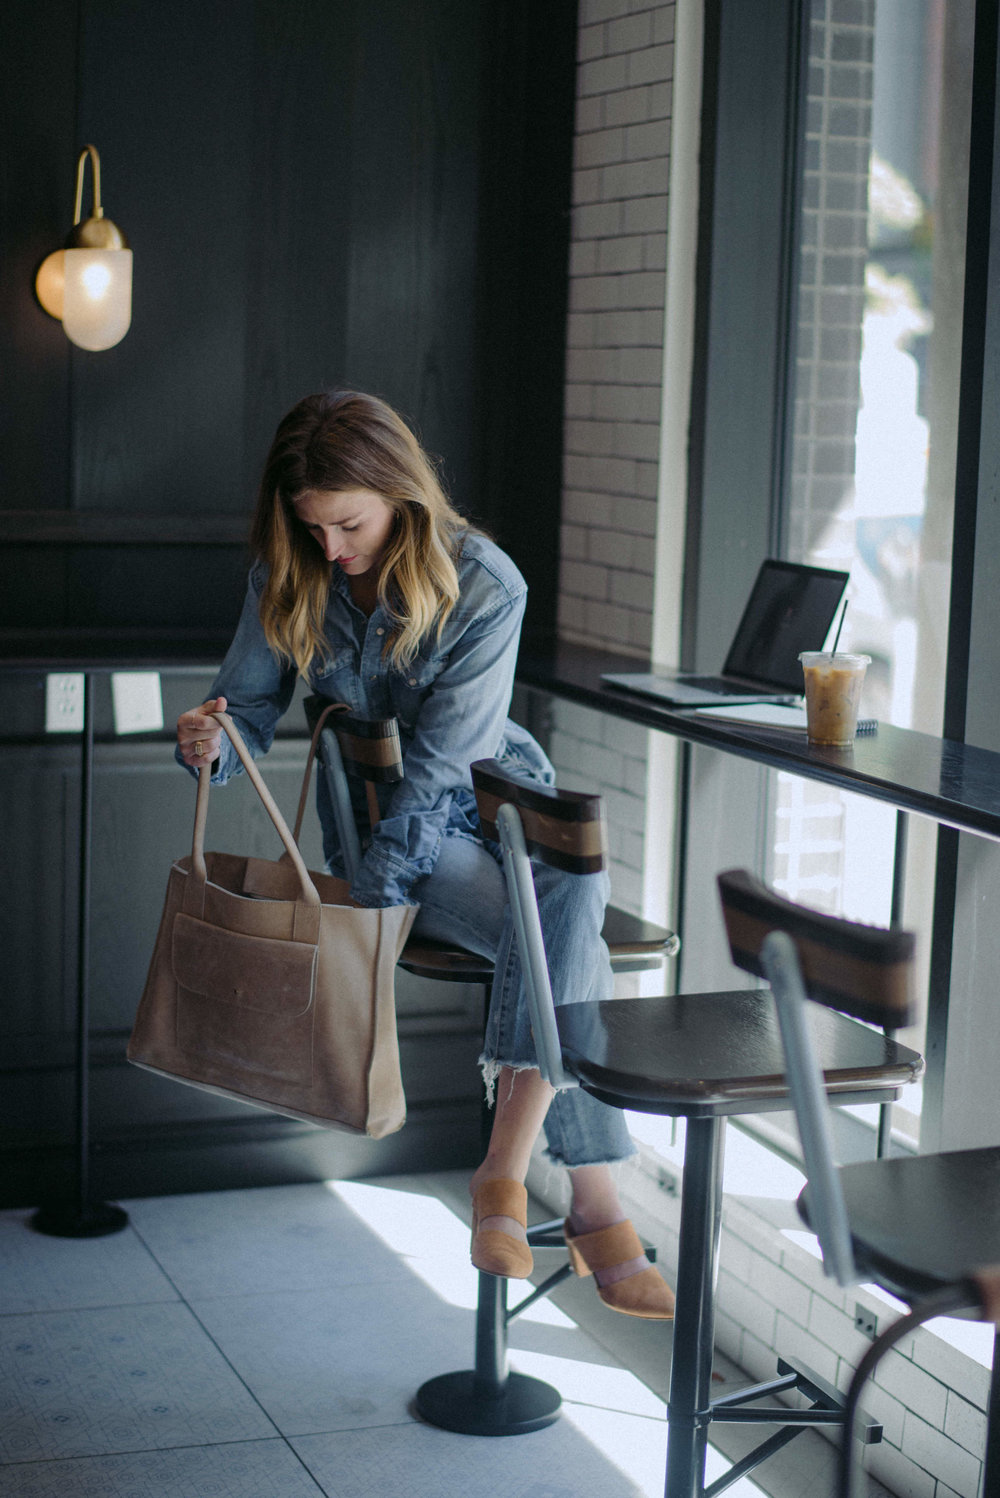 Denim on denim outfit // A Week Of  Nashville-Chic Ethical Outfits With Jordan Soderholm, Fashion Director At ABLE on The Good Trade